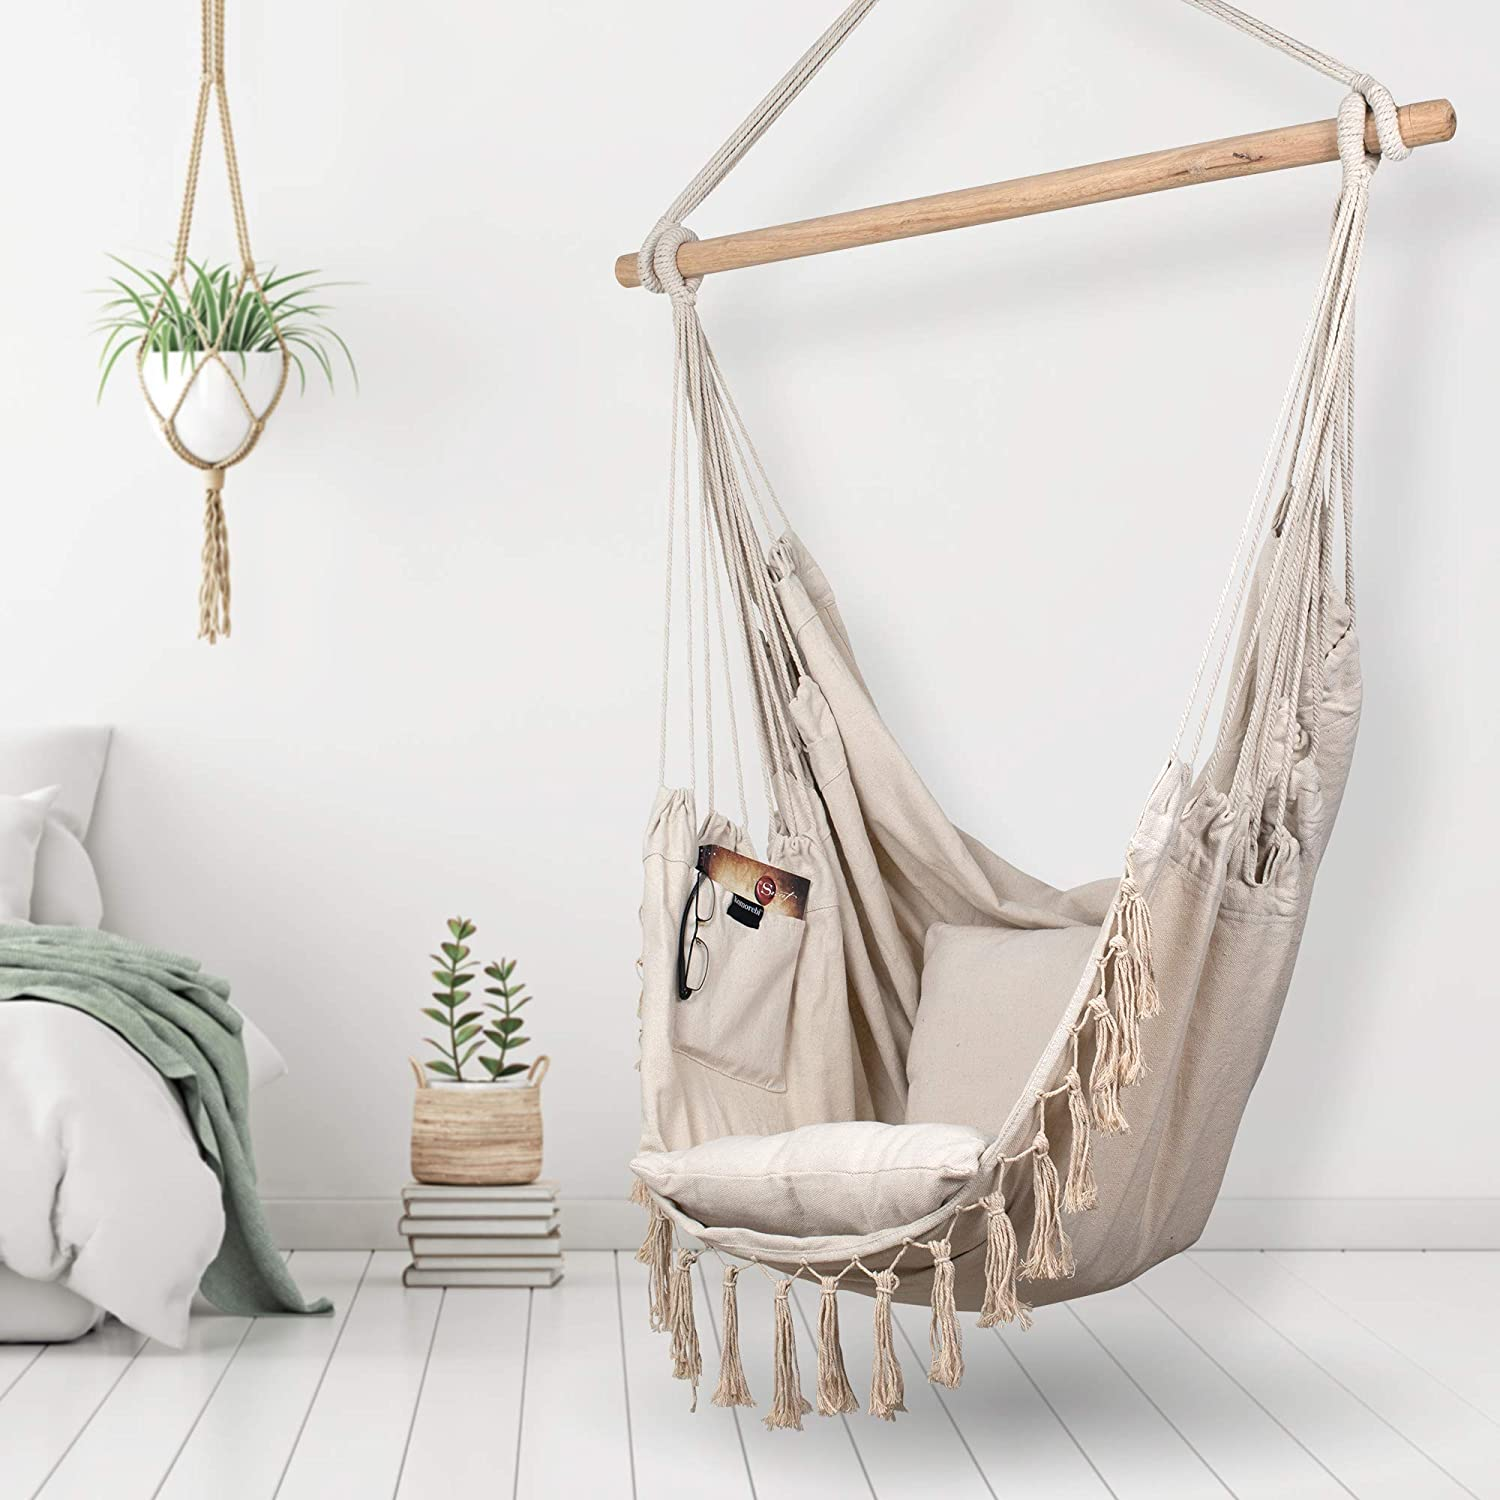 Komorebi Hammock Chair | Hanging Rope Swing Seat for Indoor & Outdoor | Soft & Durable Cotton Canvas | 2 Cushions Included | Large Reading Chair with Pocket for Bedroom, Patio, Porch (Ivory)